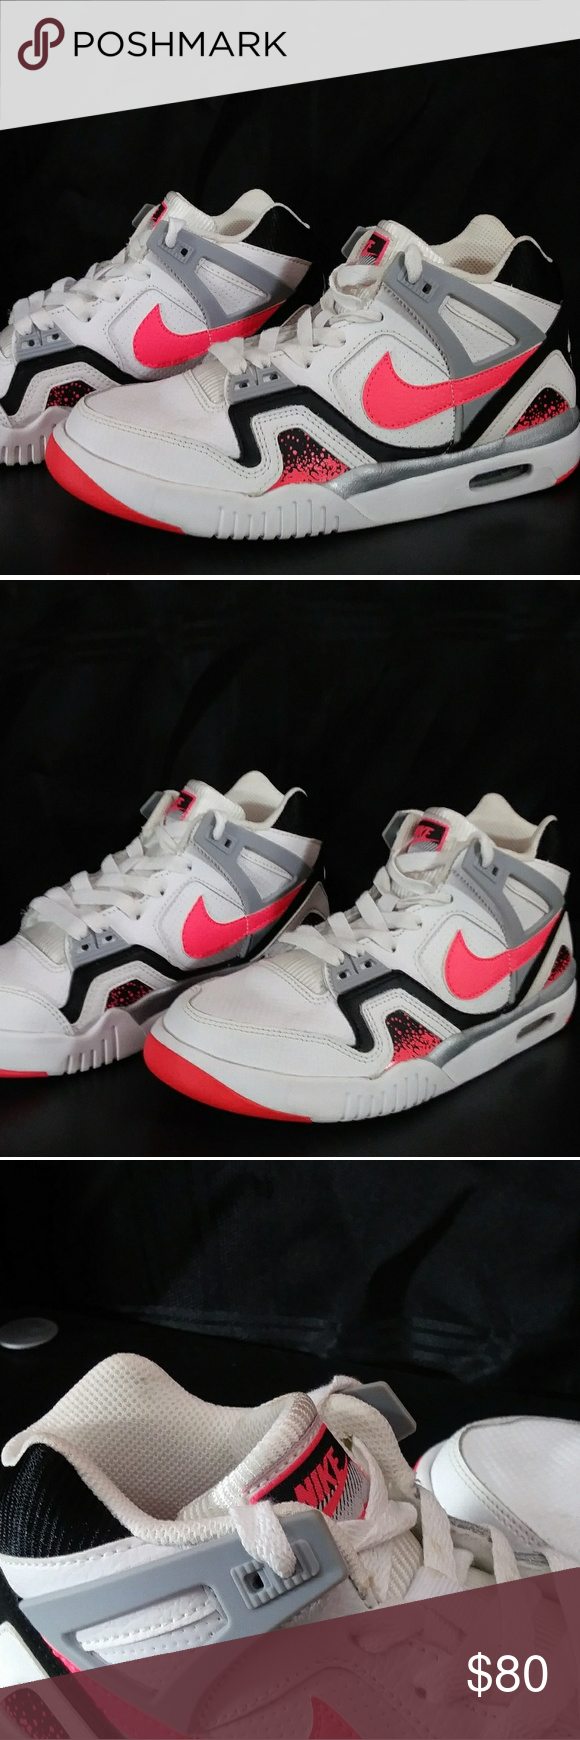 NIB! Nike Air Tech Challenge 2 Wht/Pink Size 4.5Y New in